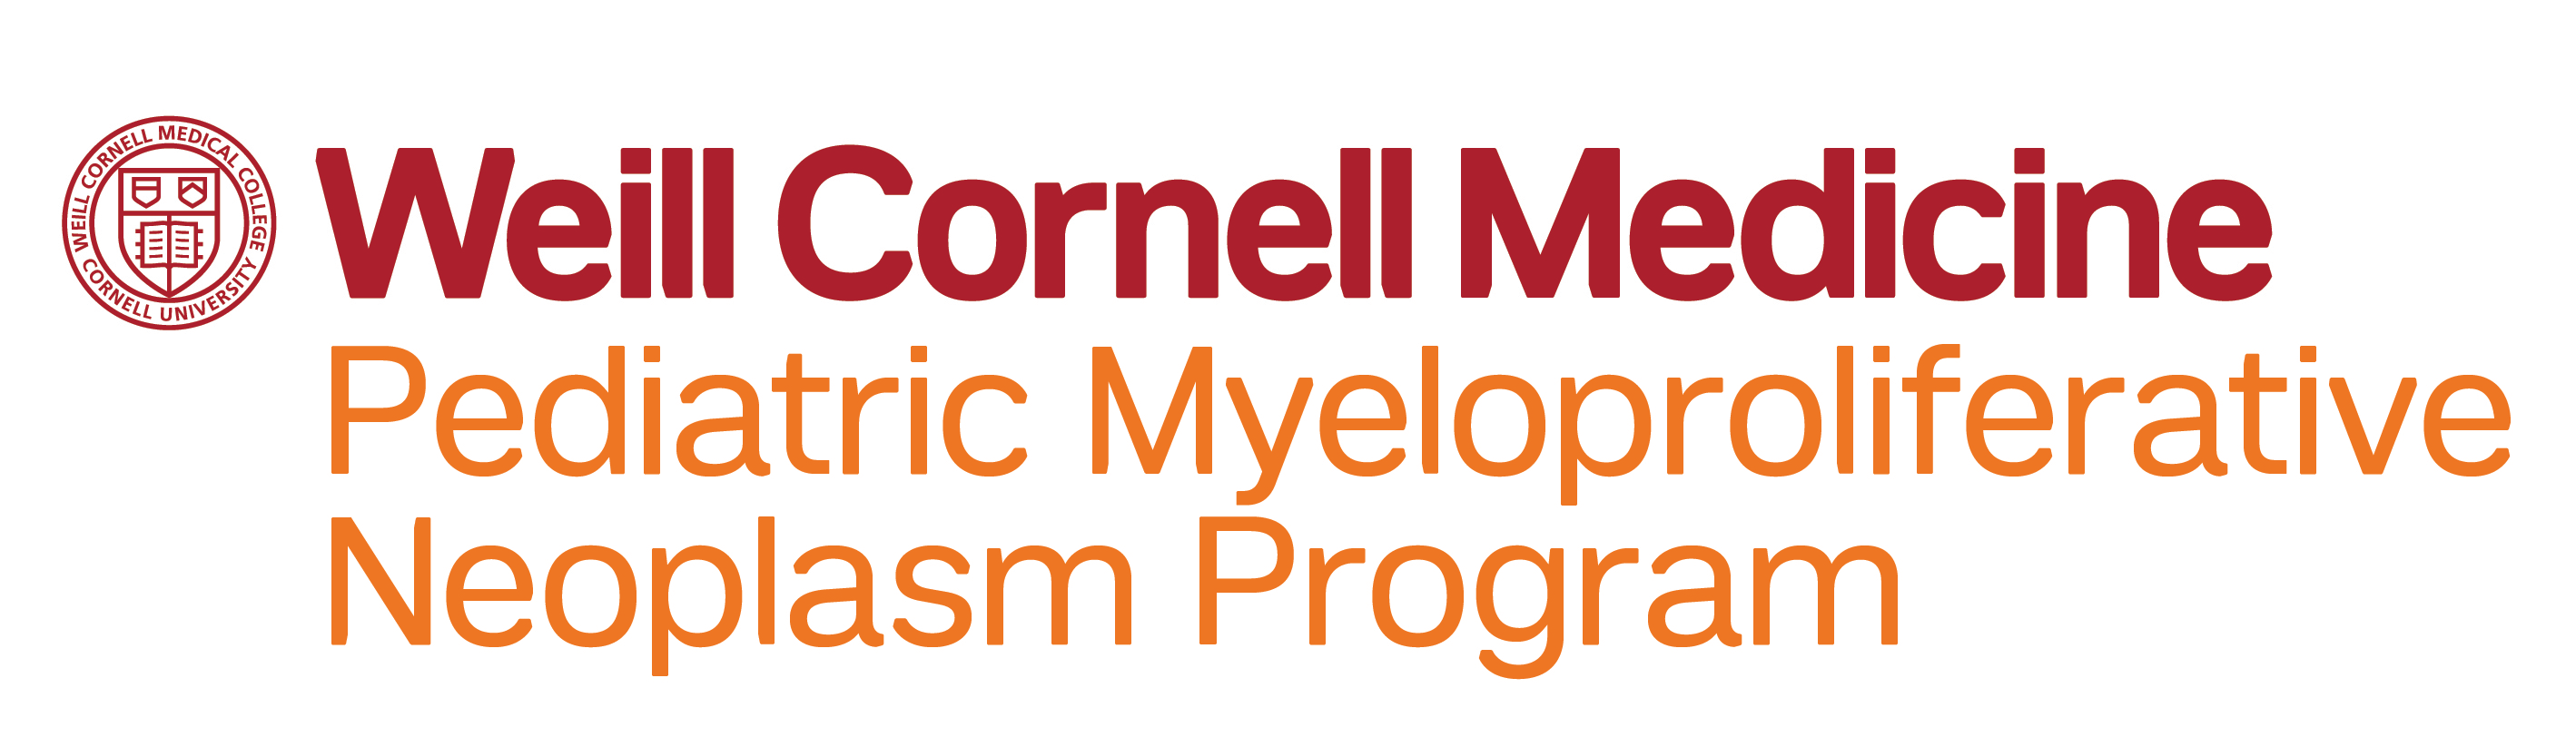 Pediatric Myeloproliferative Neoplasm Program